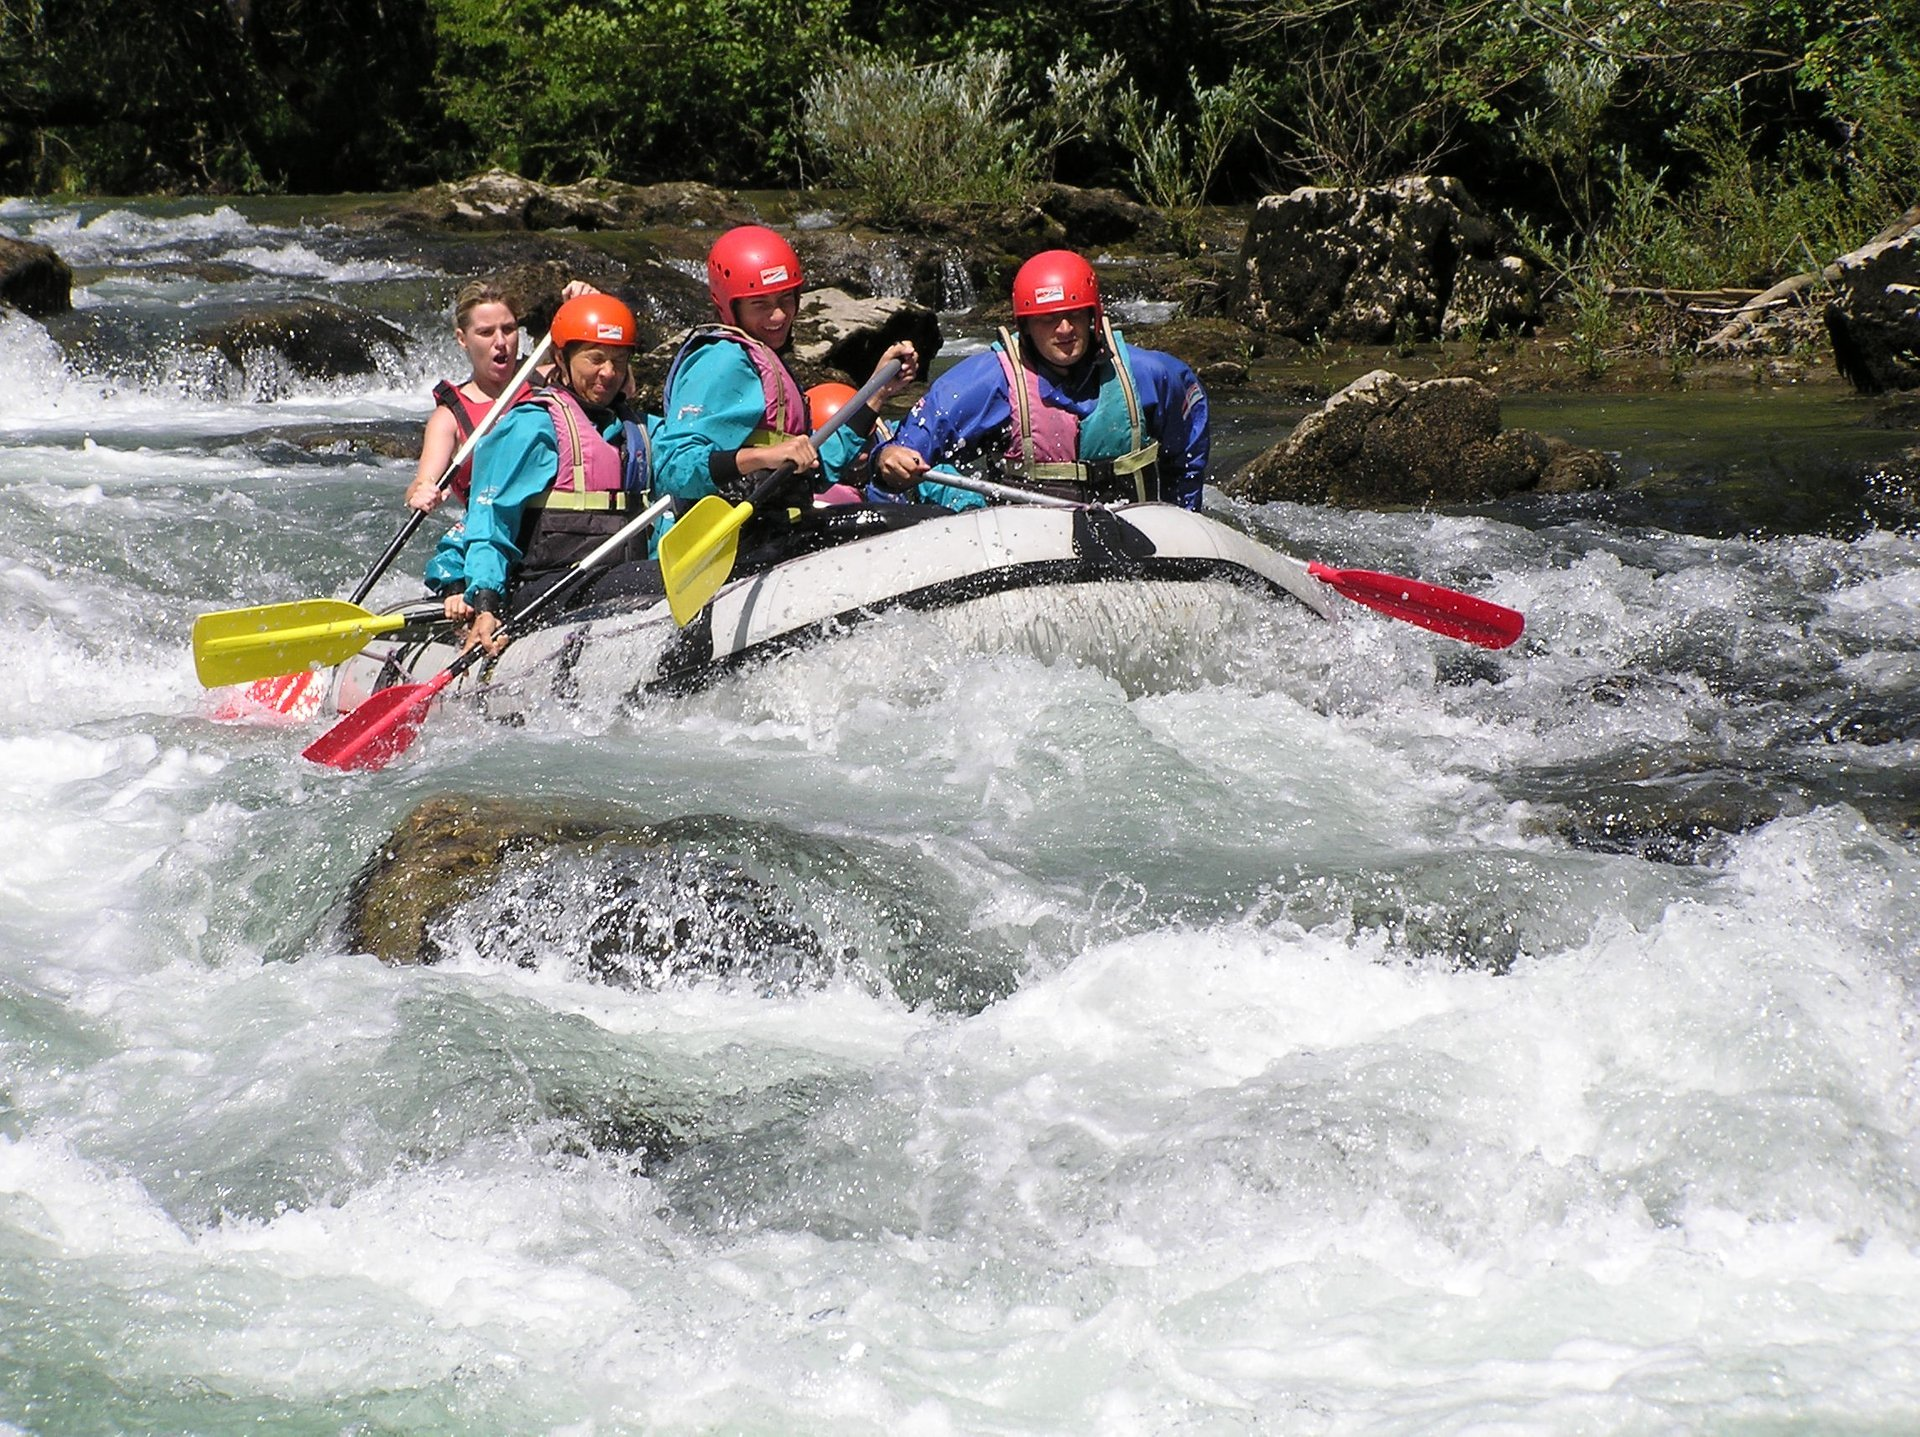 White Water Rafting in Croatia 2019 - Best Time